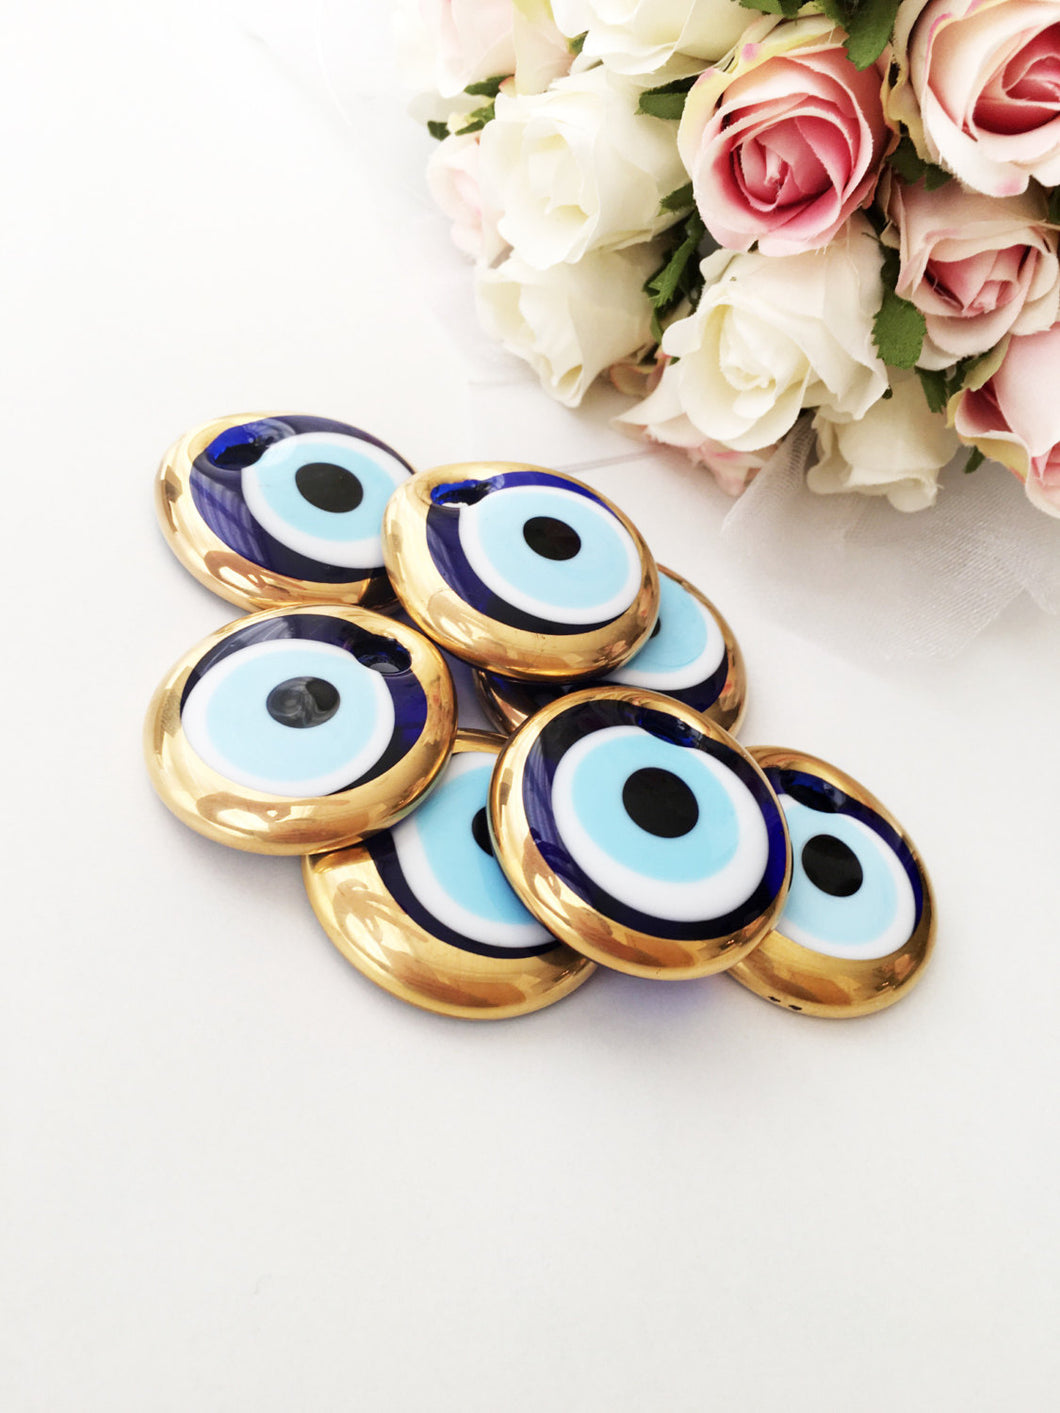 10 pcs evil eye charm, bulk gift evil eye gold unique wedding favors, - Evileyefavor